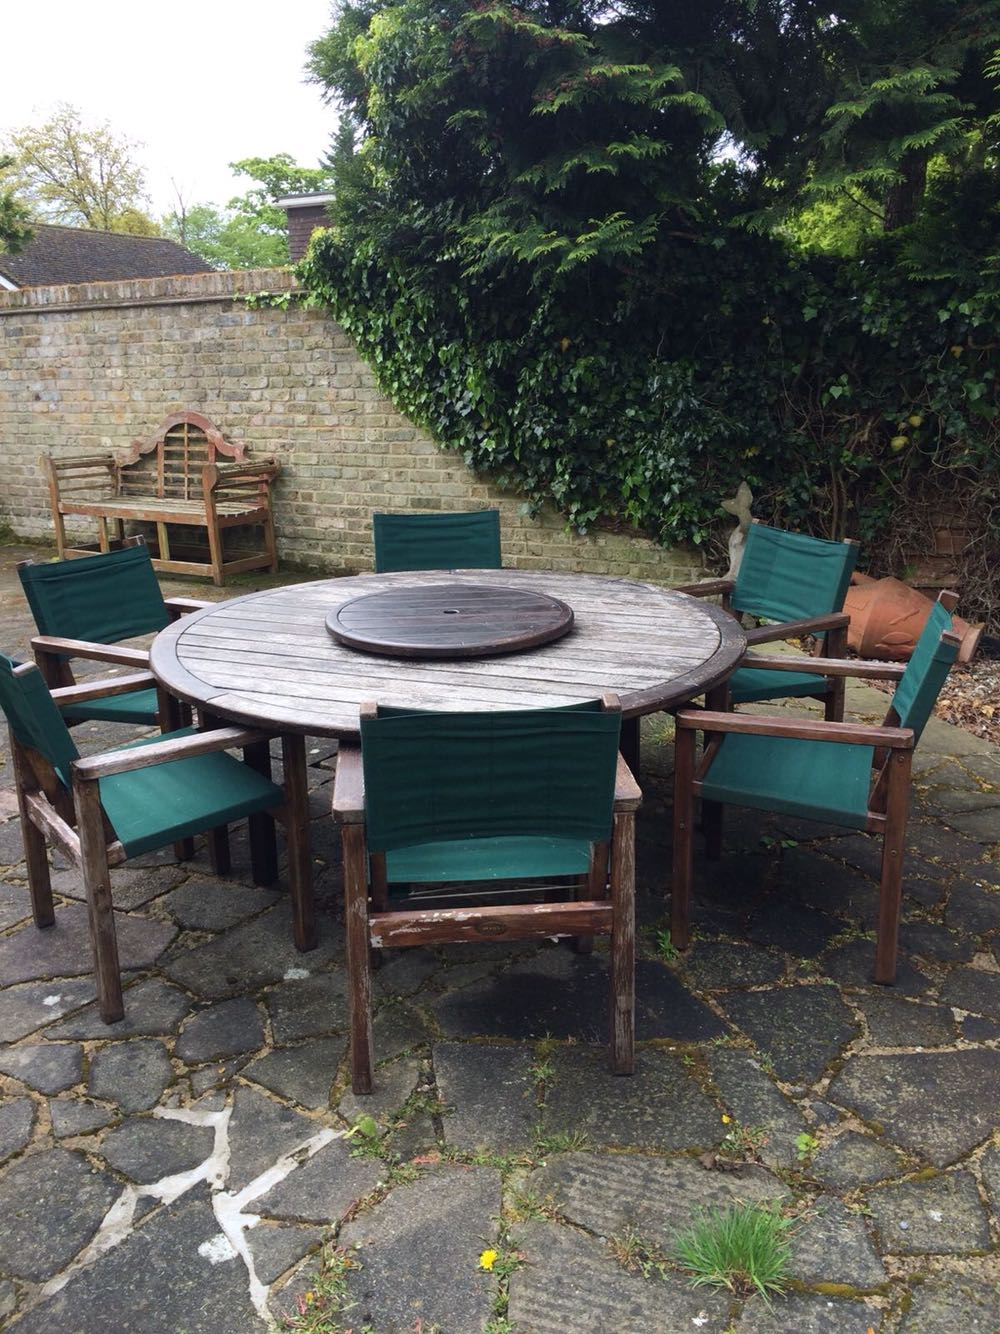 Second Hand Garden Furniture Buy and Sell in Bury St Edmunds